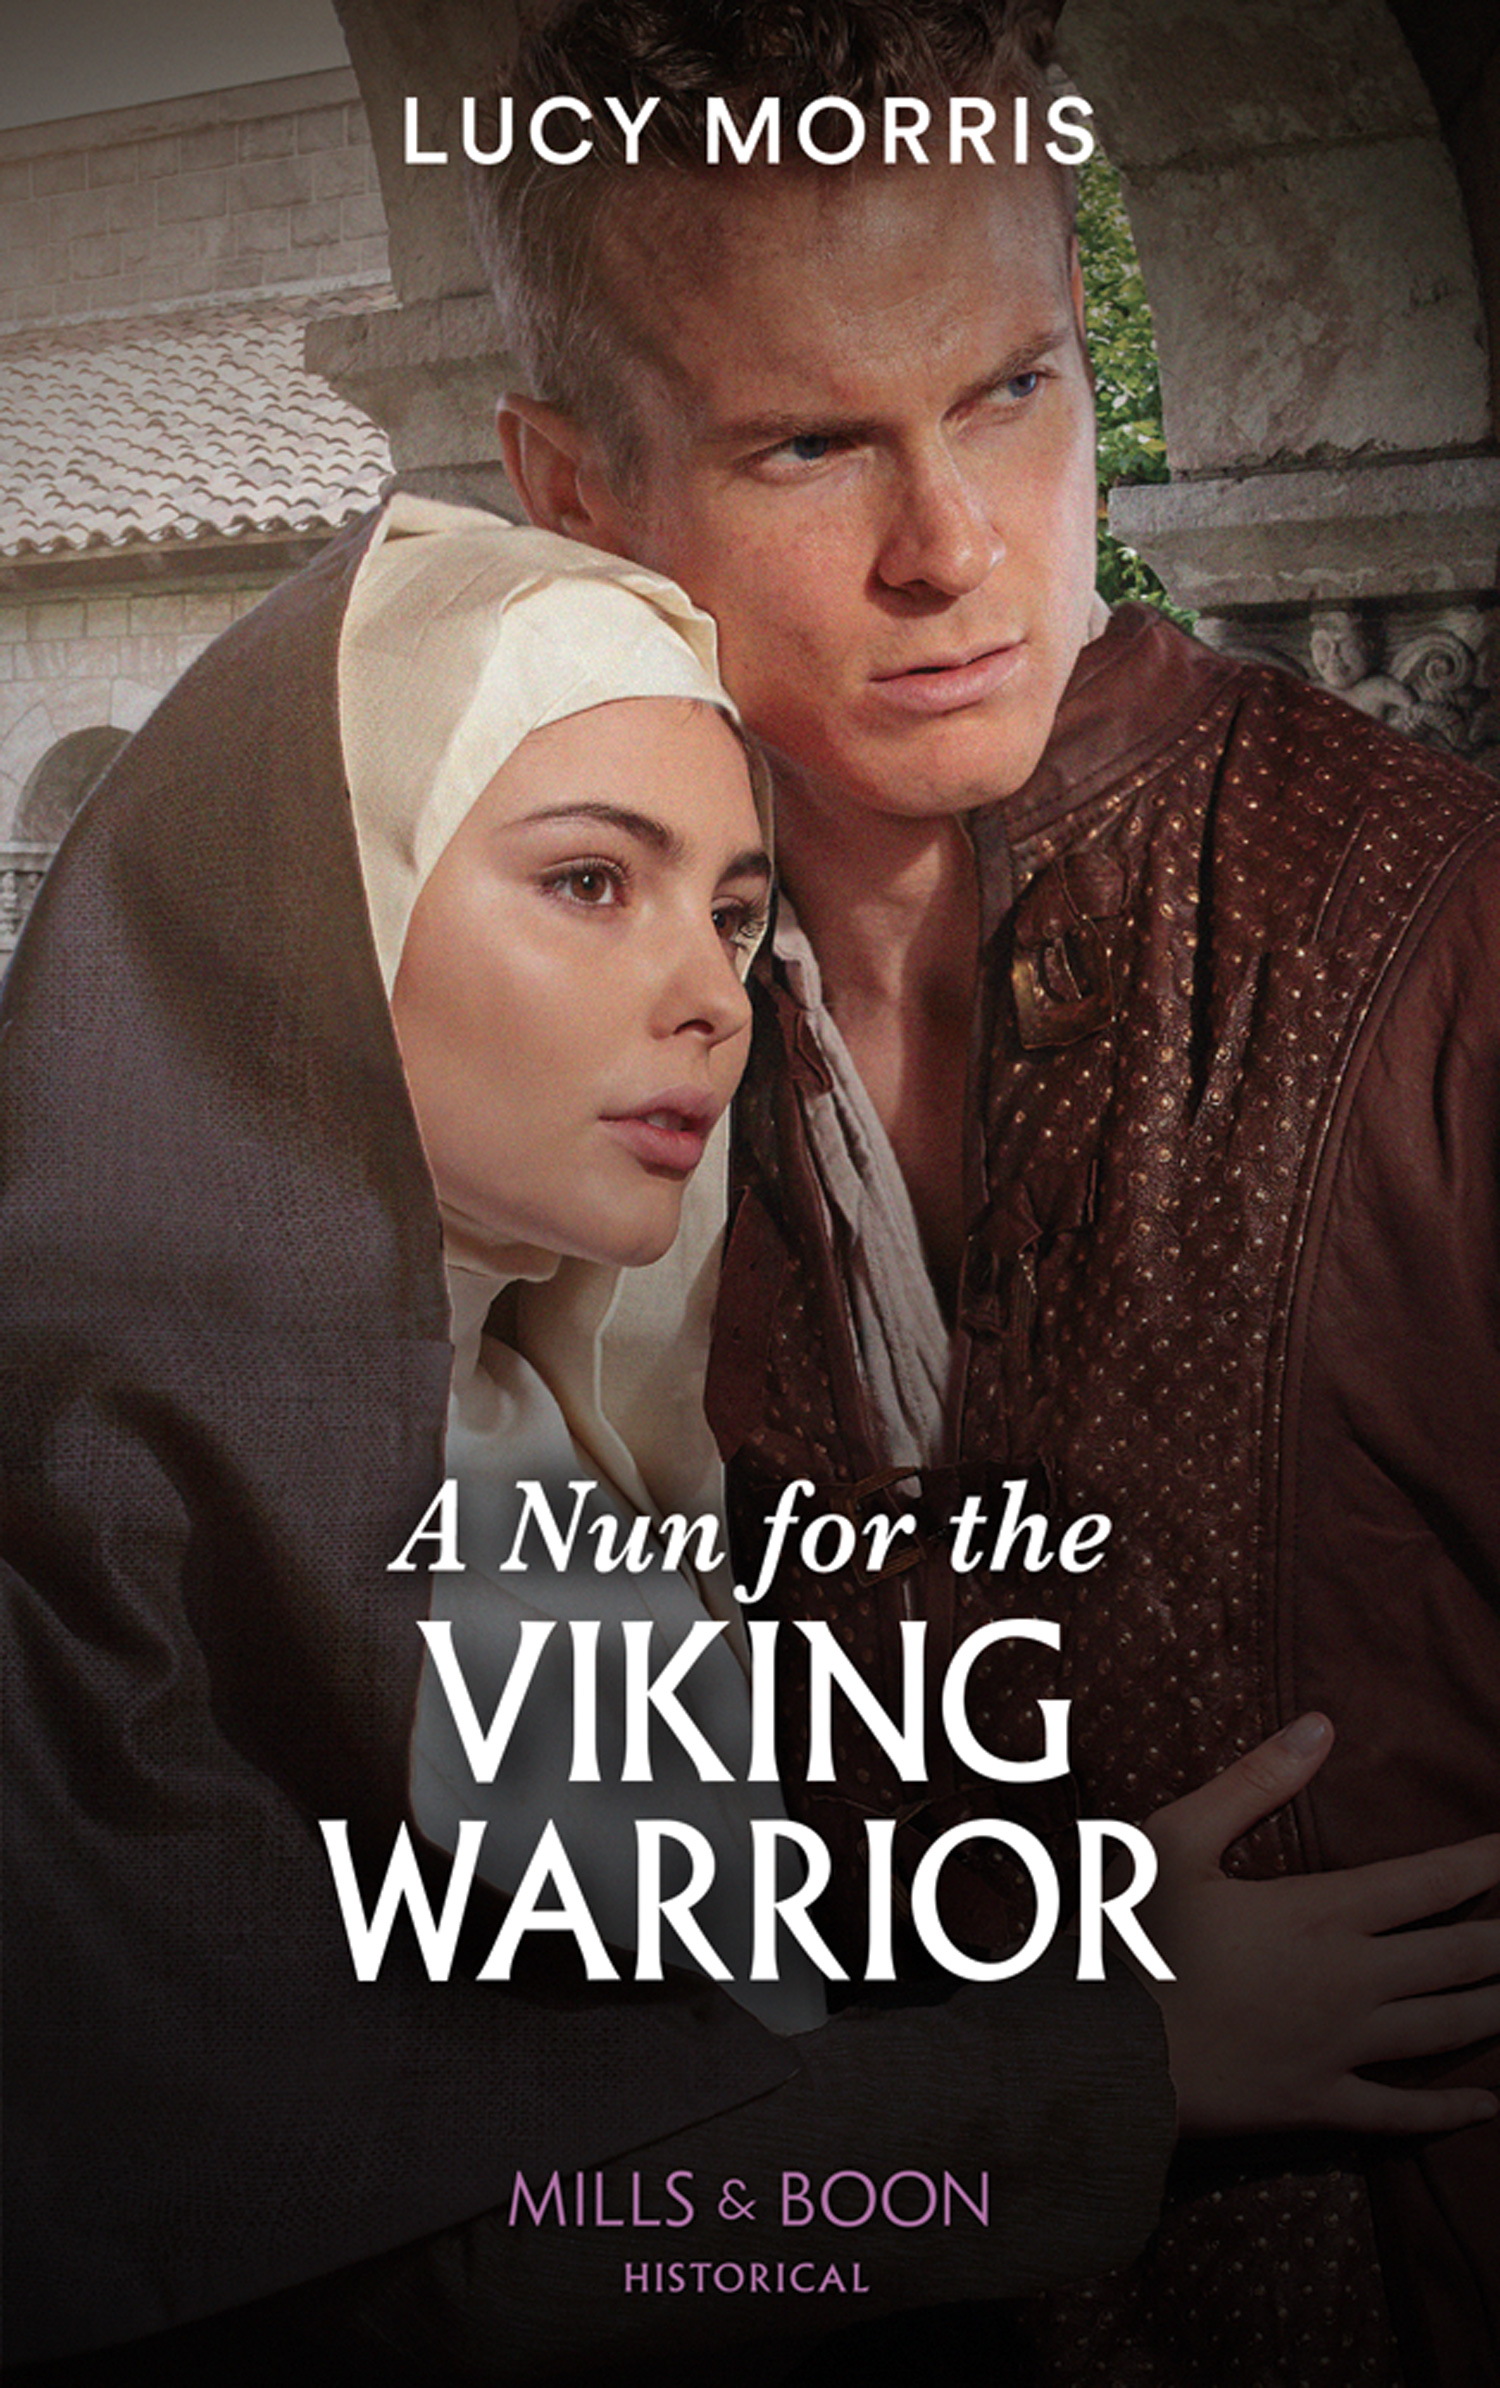 A Nun for the Viking